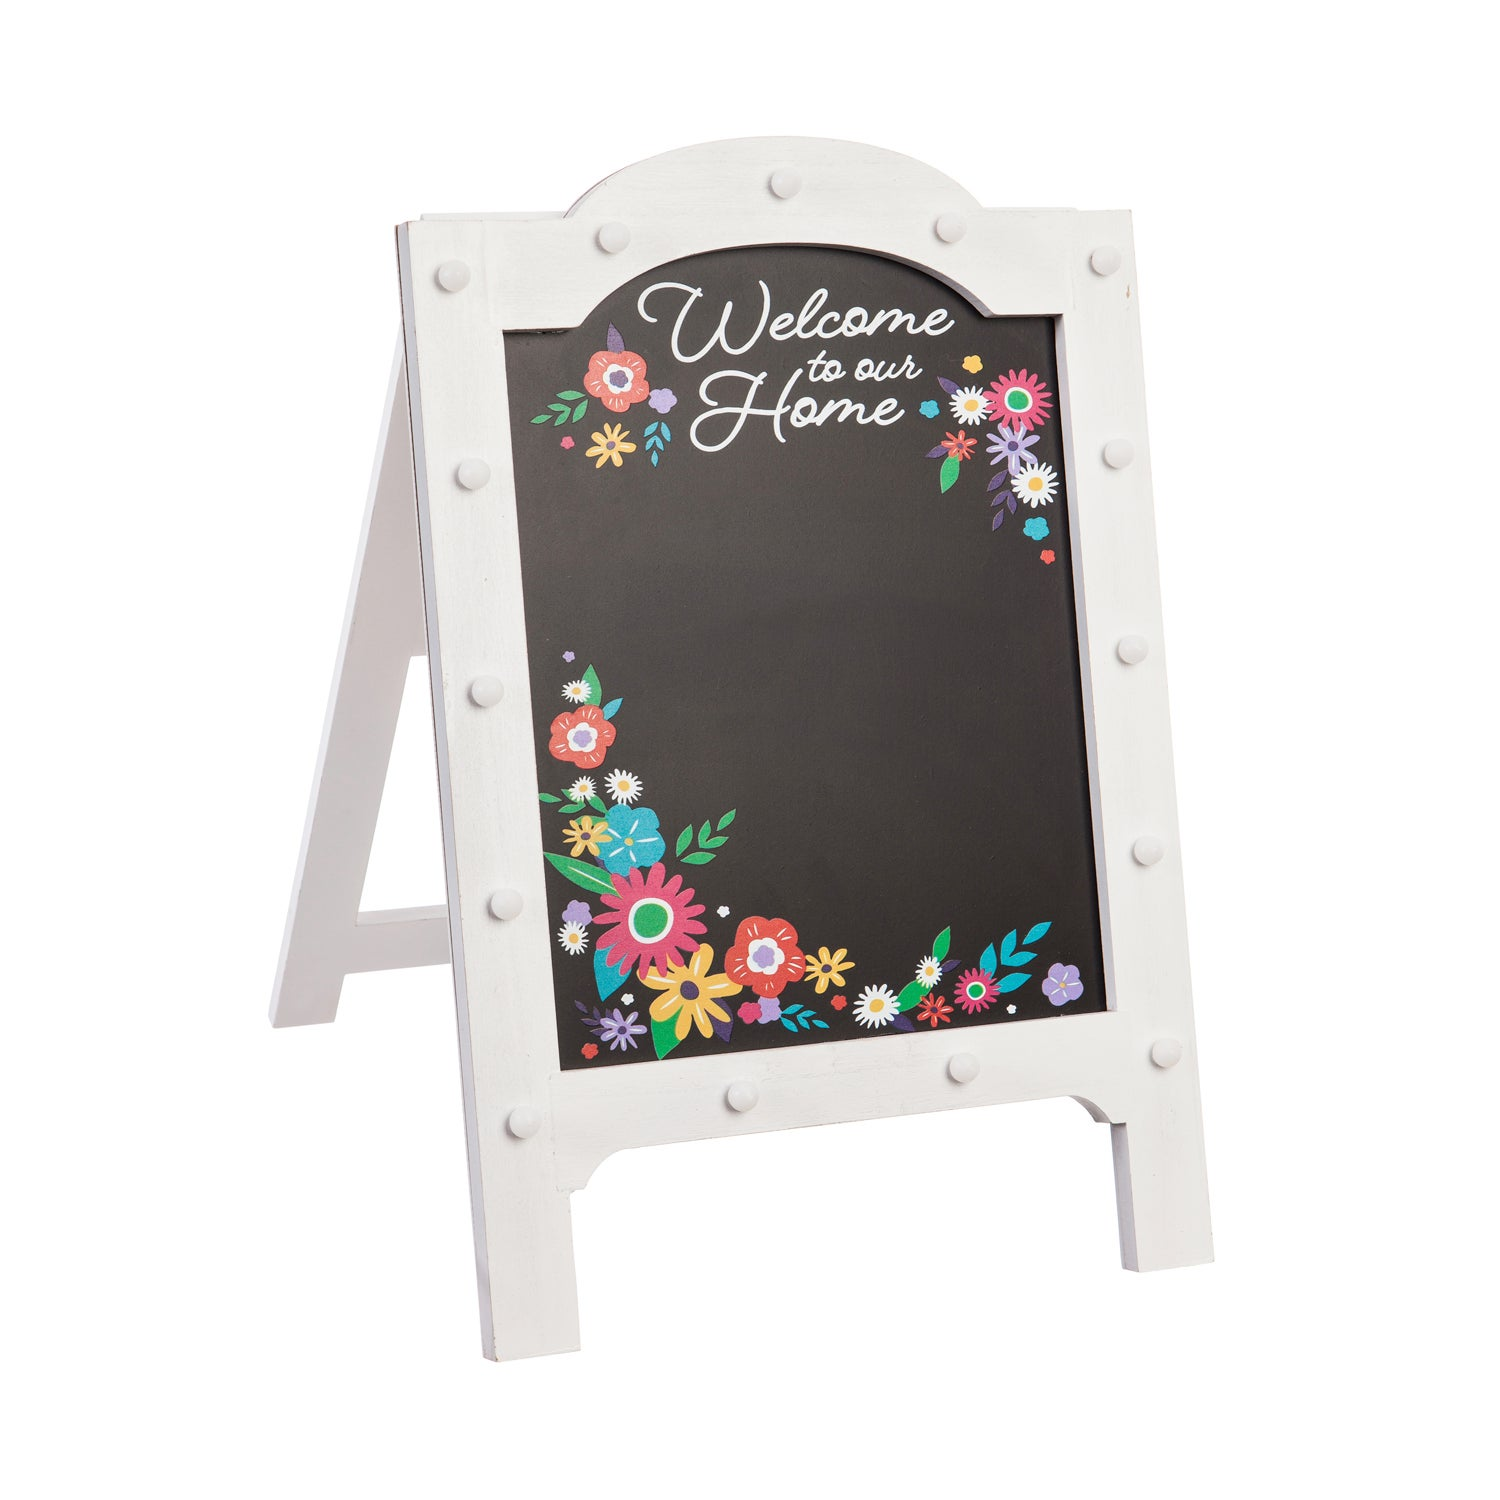 Welcome to our Home Lighted Easel Sign Outdoor Porch Decor